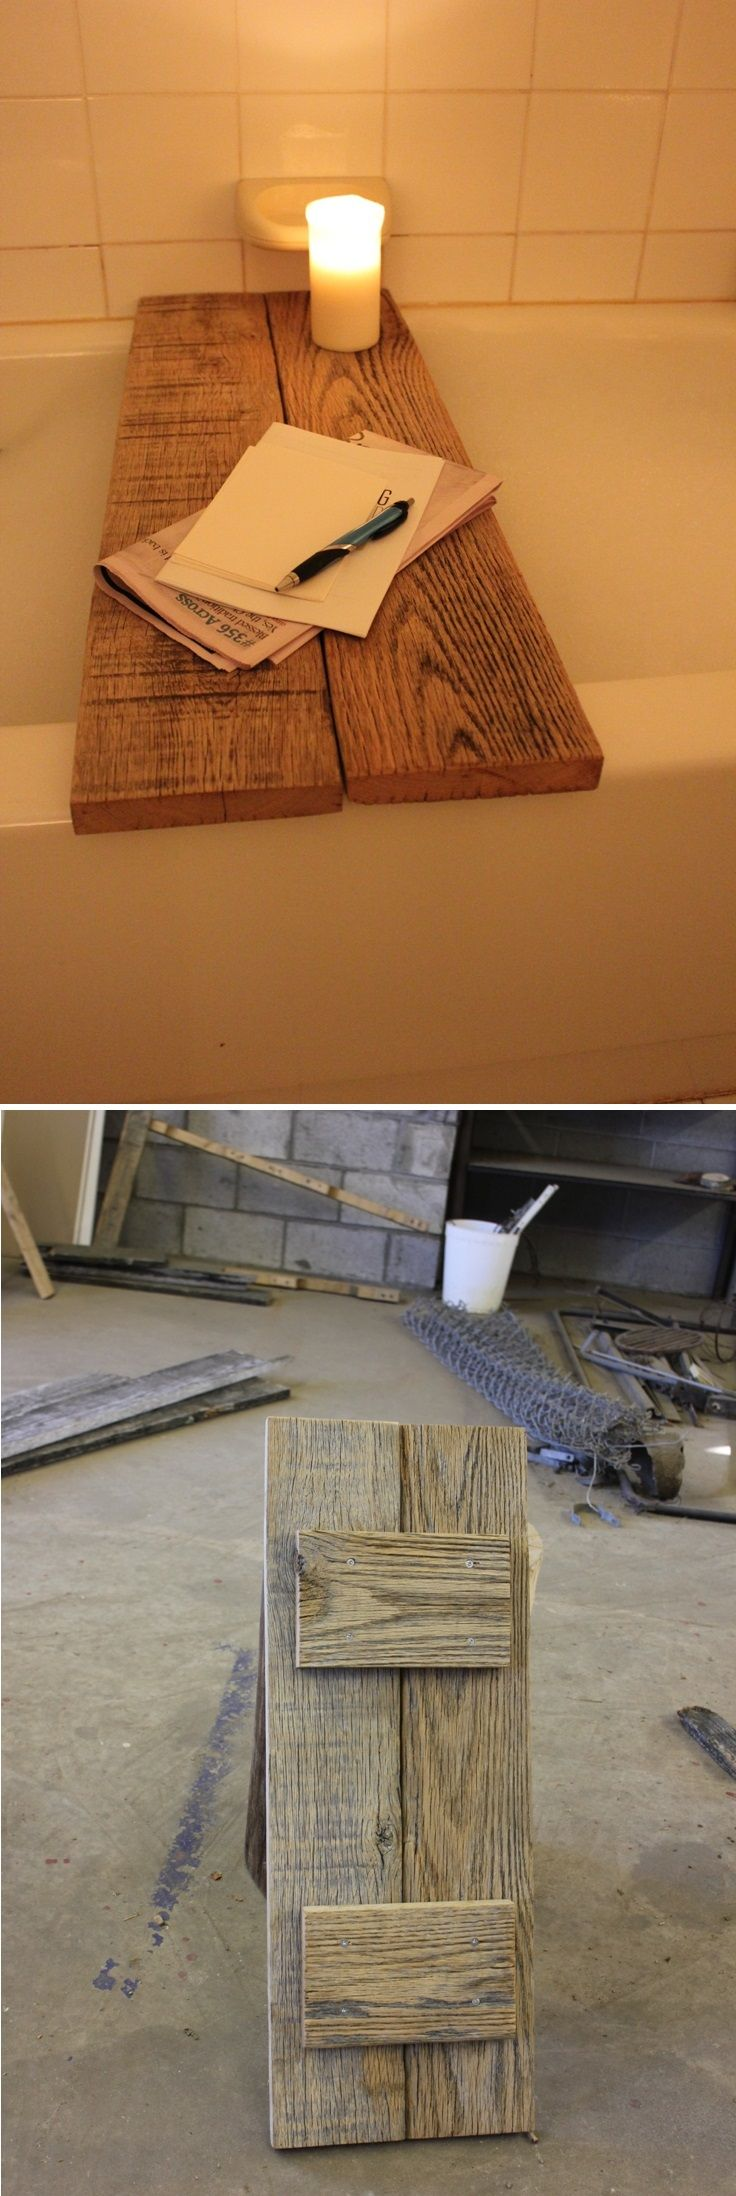 Bubble Time: DIY Reclaimed Oak Bathtub Caddy - Let Alan know I found projects! @Linda Bruinenberg Bruinenberg Bruinenberg Barker - it doesn't look too hard!